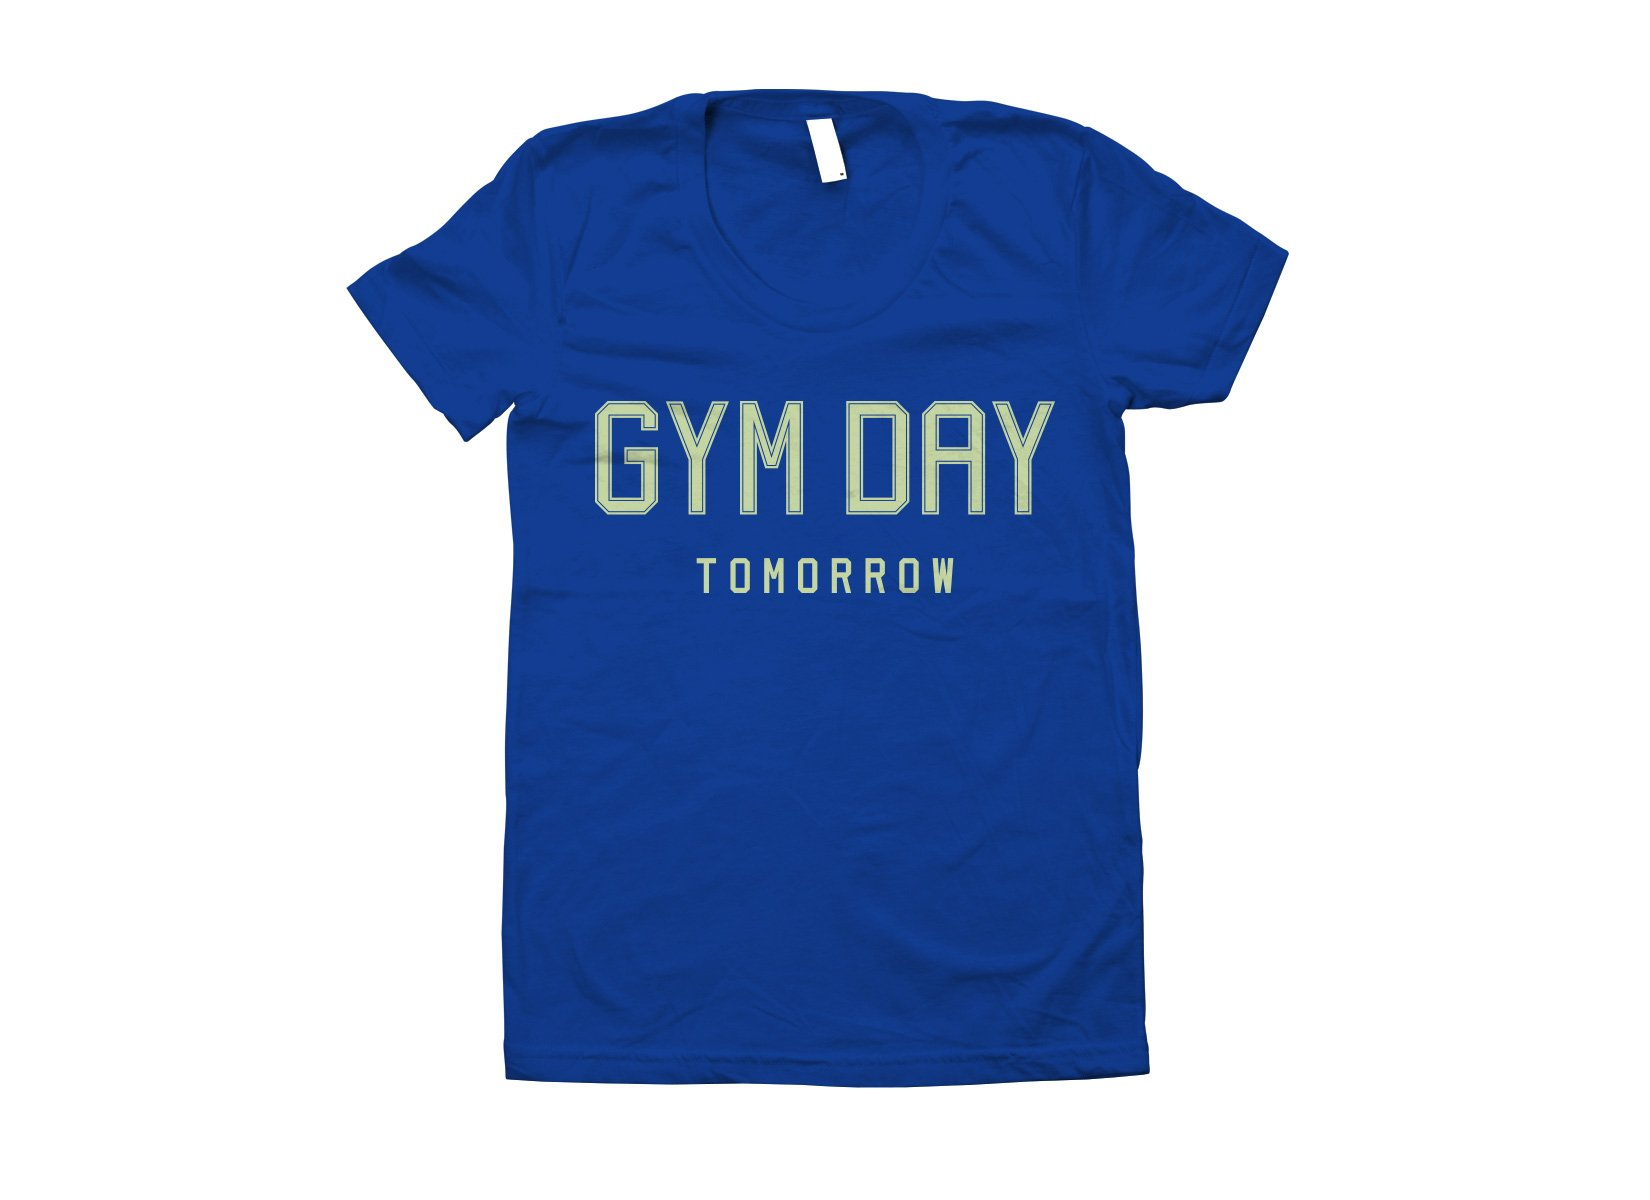 Gym Day Tomorrow on Juniors T-Shirt